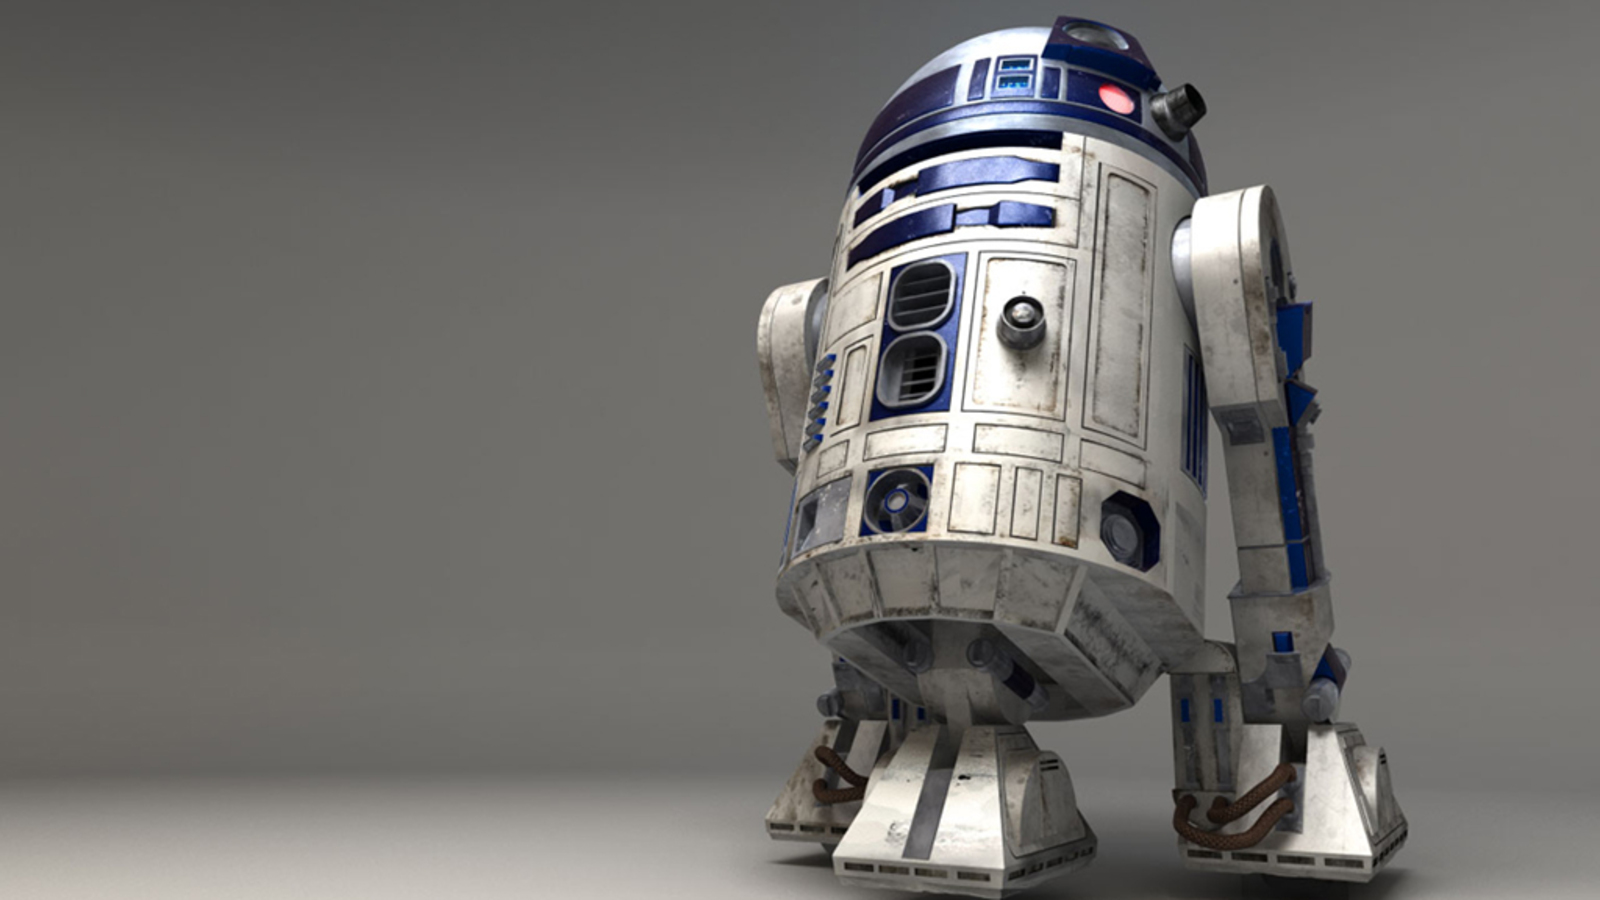 Star Wars Wallpaper 3D